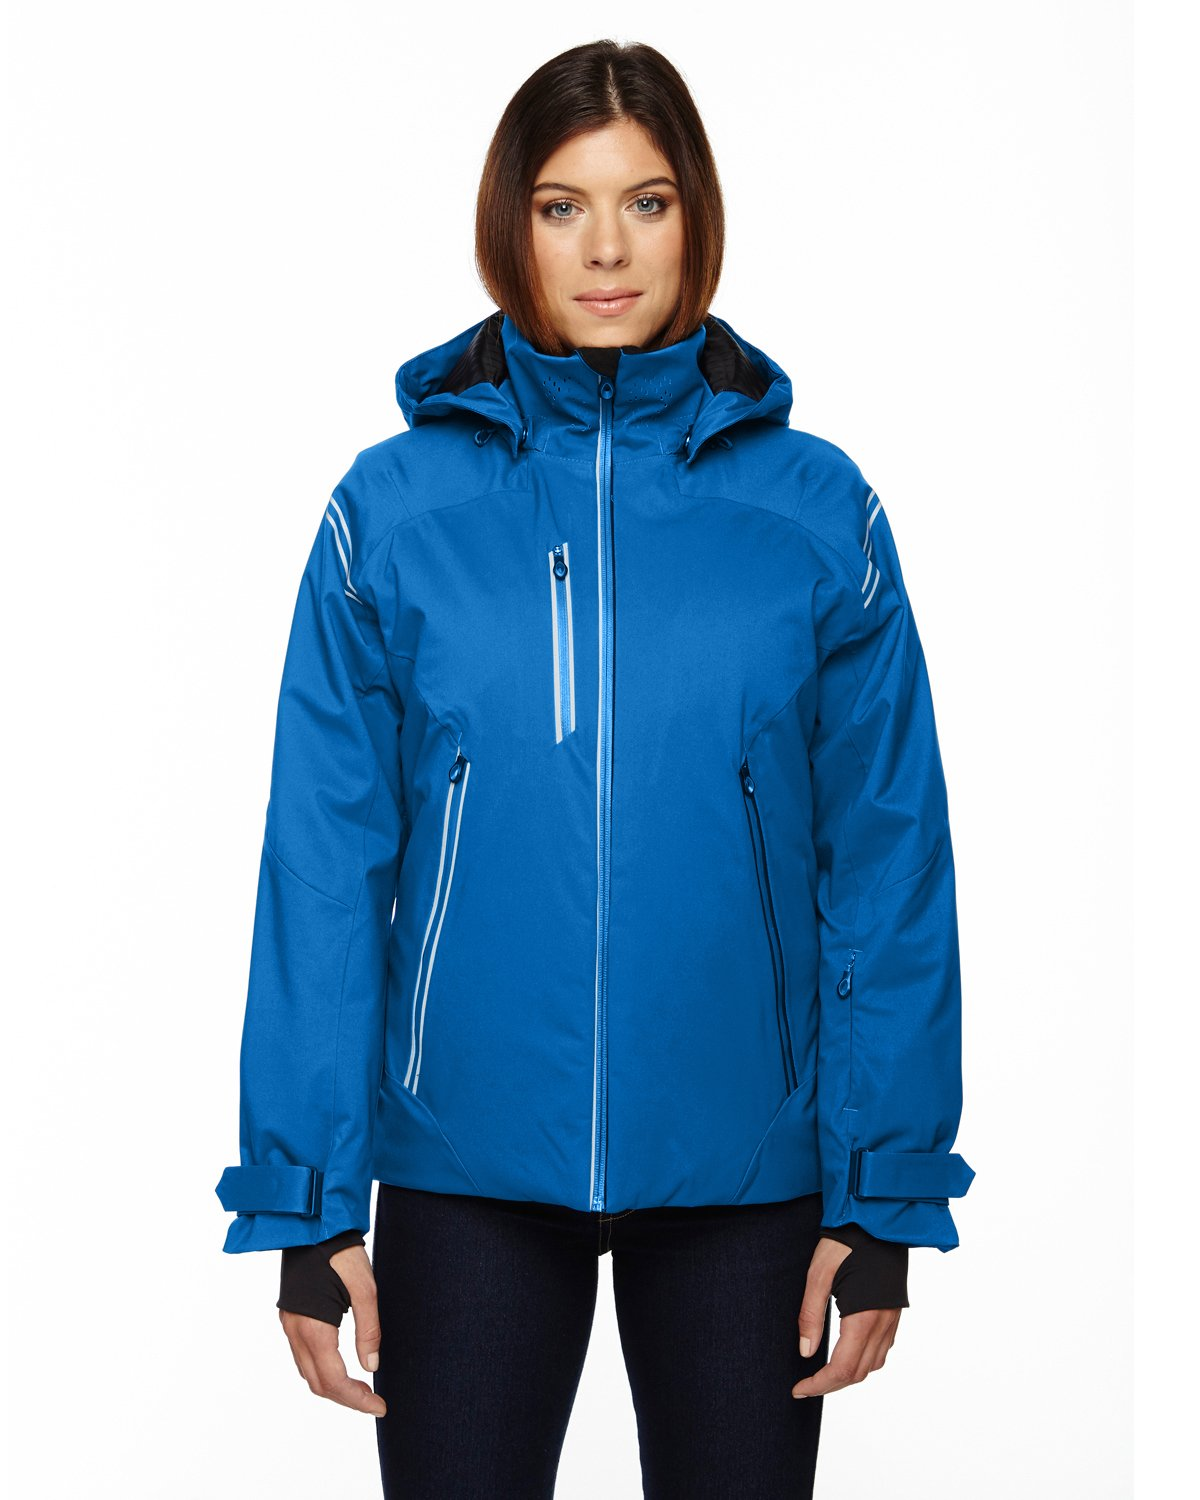 Ash City Ladies Ventilate Insulated Jacket (Small, Olympic Blue)